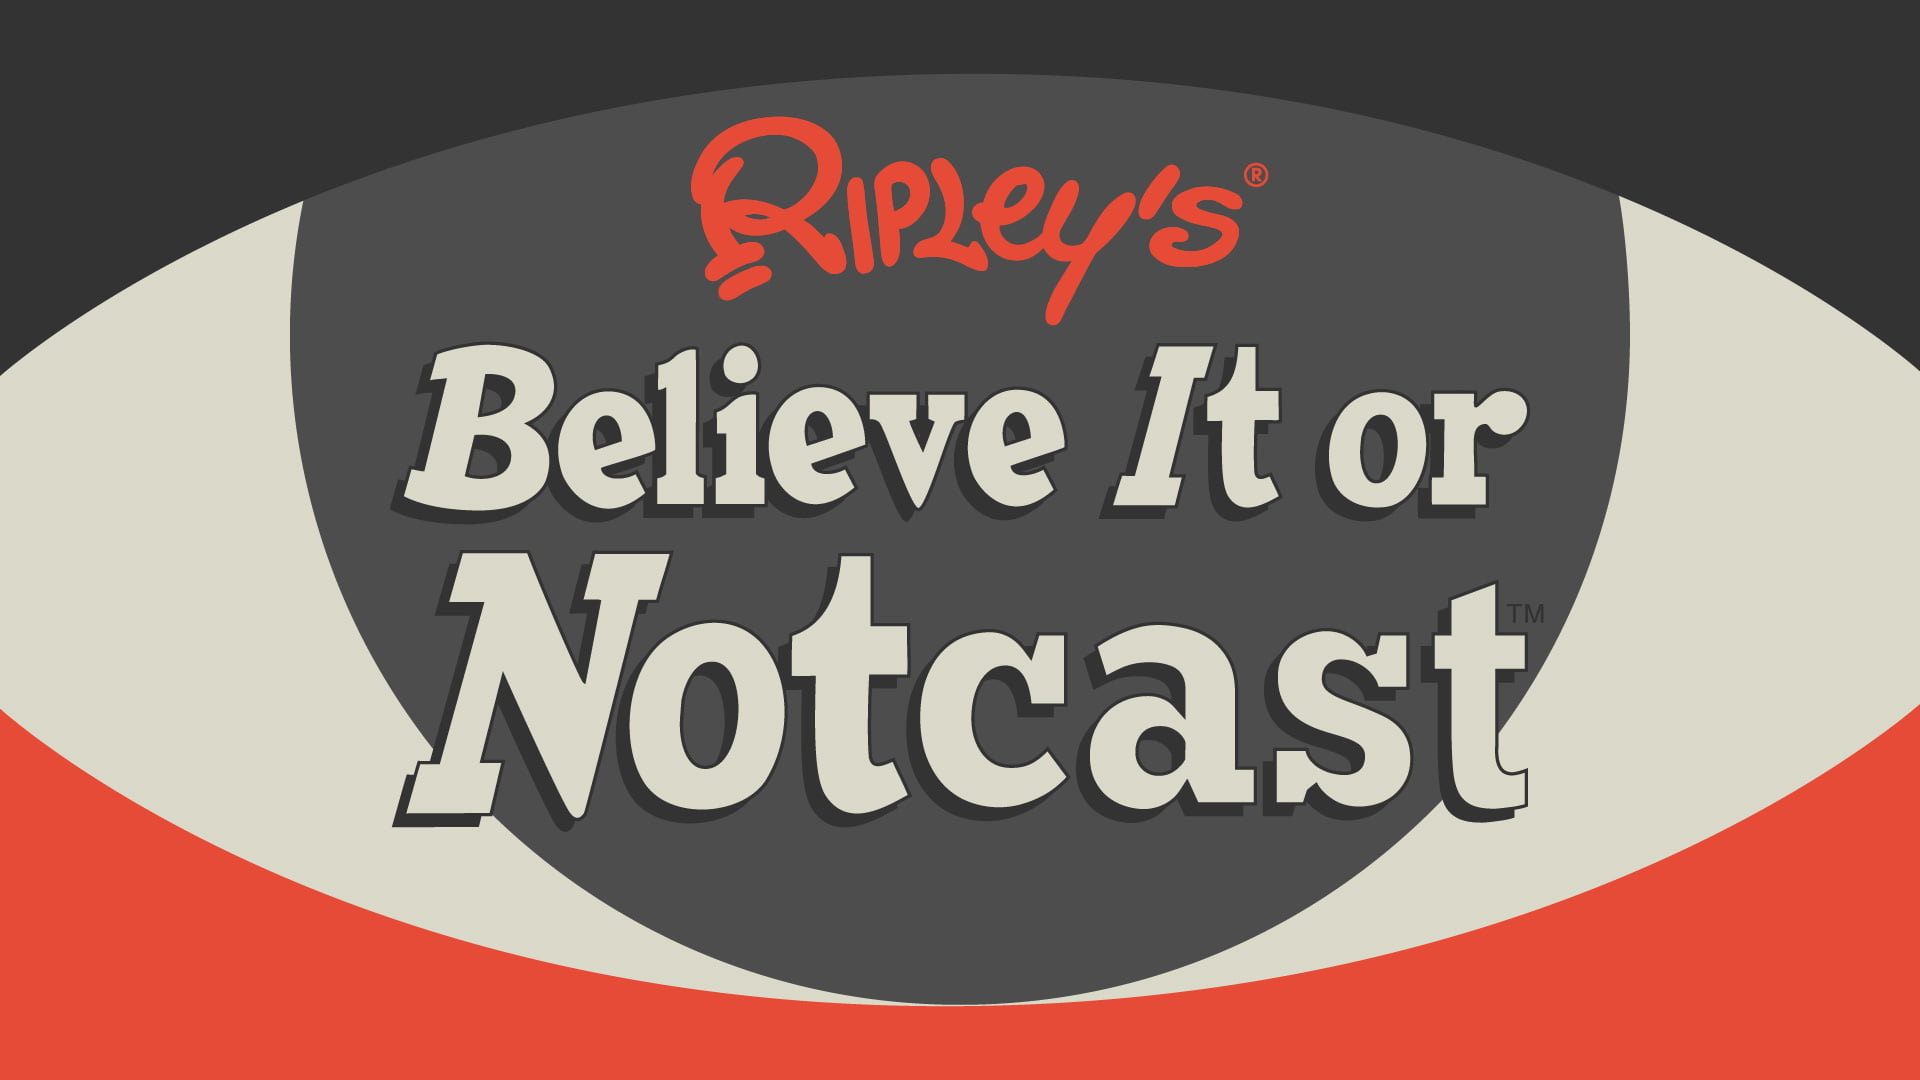 Celebrating 100 Years of Strange But True,  Ripley's Believe It or Not! Launches New Podcast